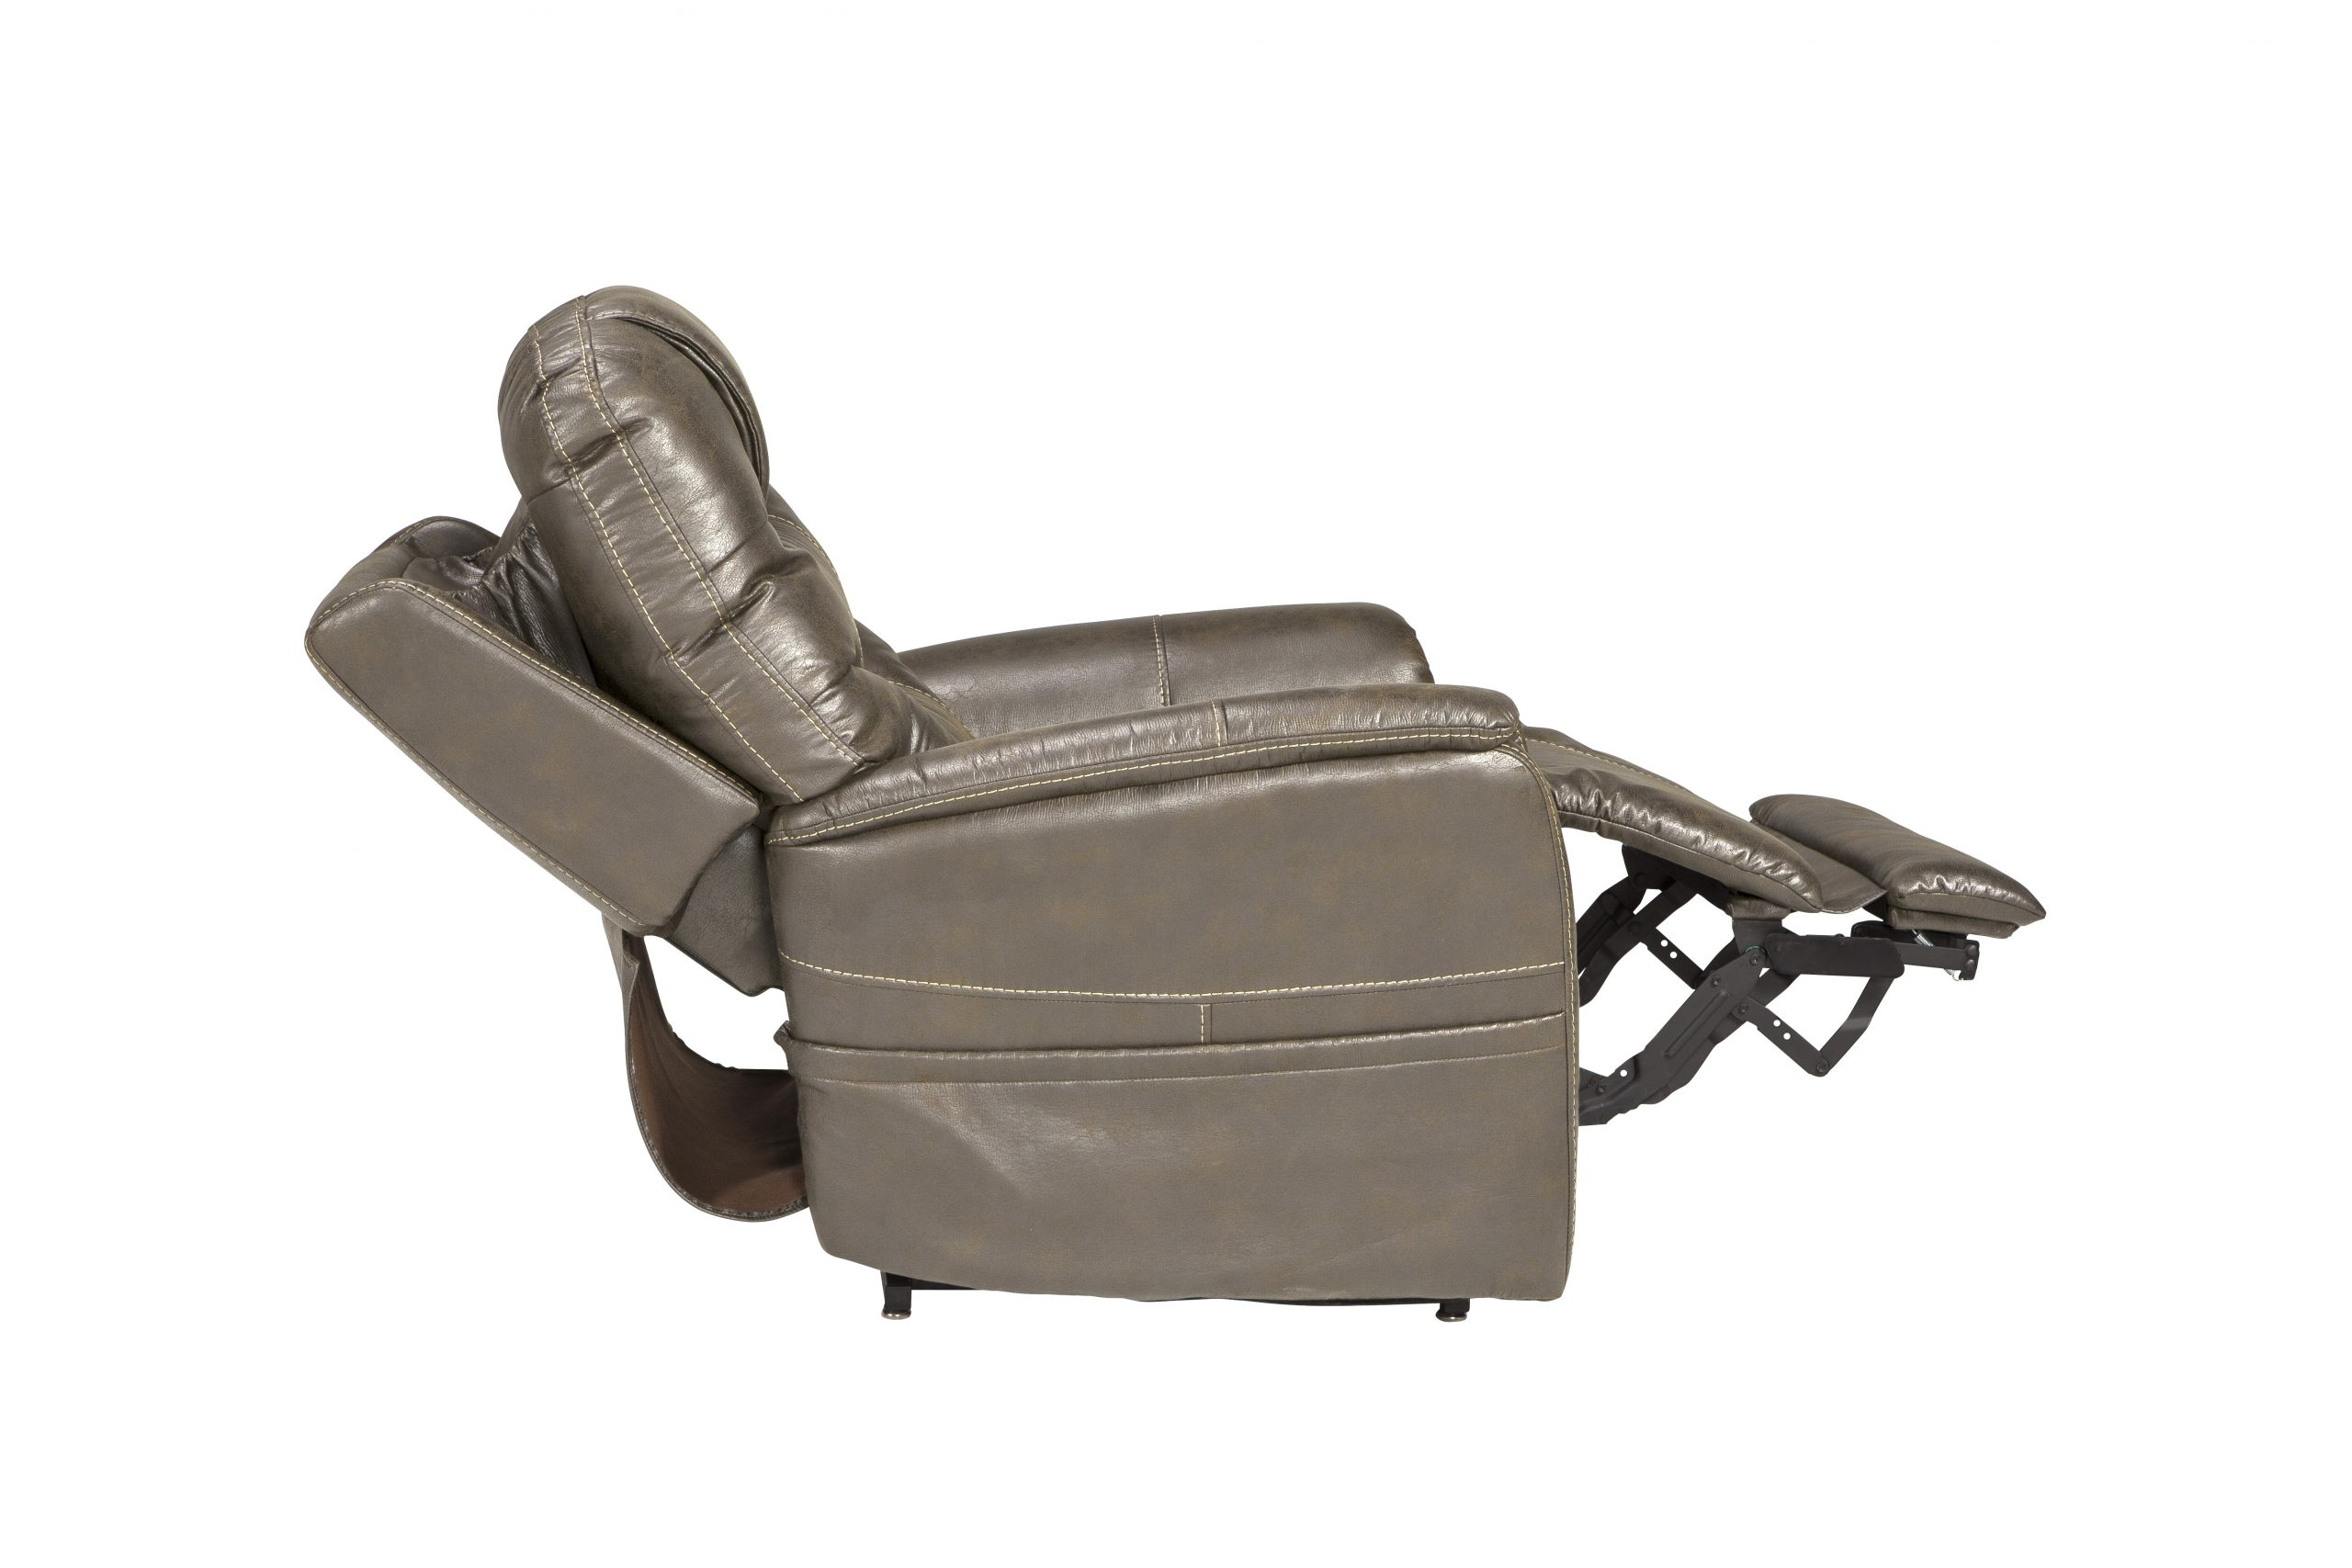 Buy a Lift Chair Reclined